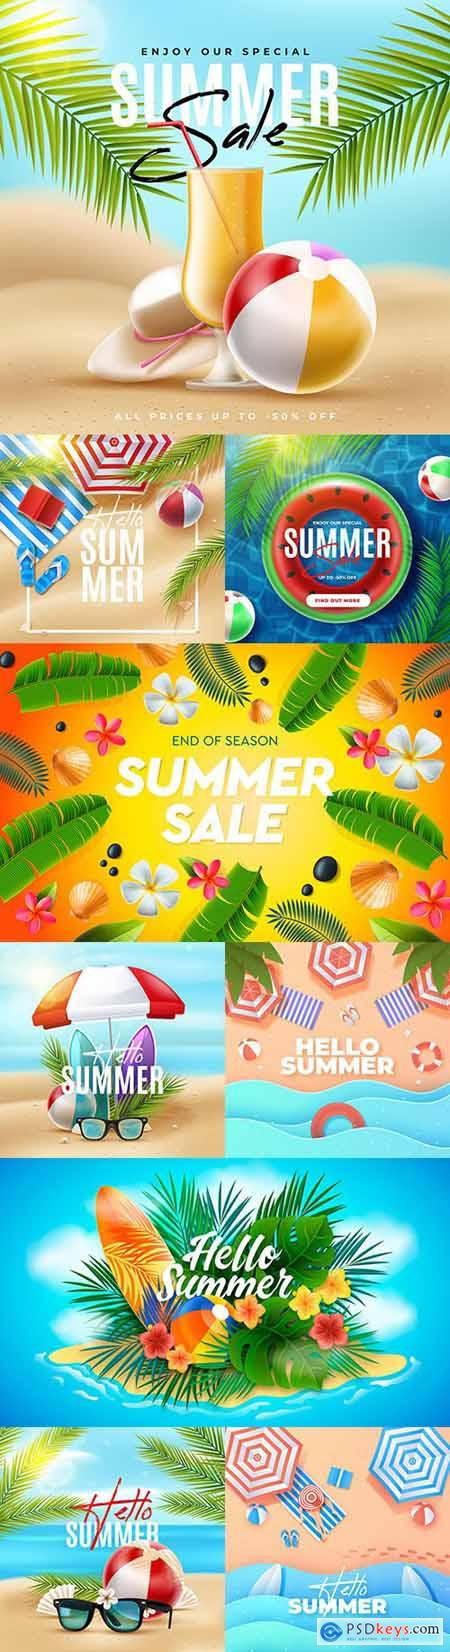 Hello summer sale design with tropical leaves 2